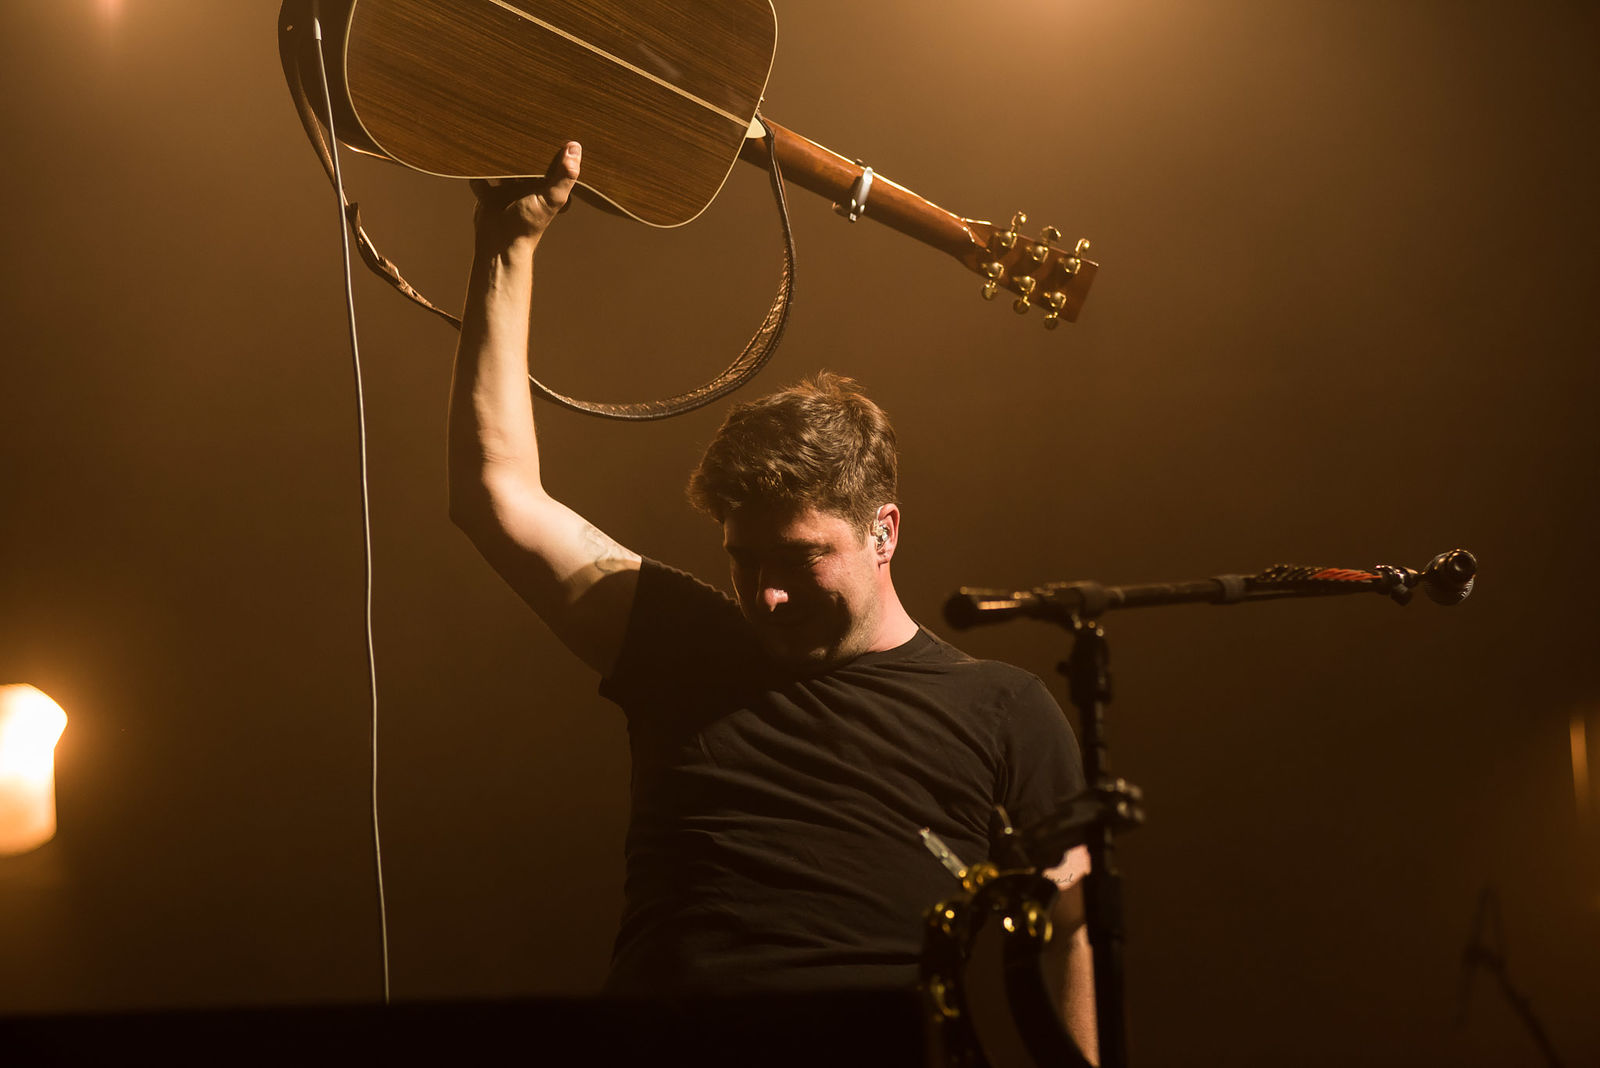 mumford_and_sons32_website_image_vfpk_standard